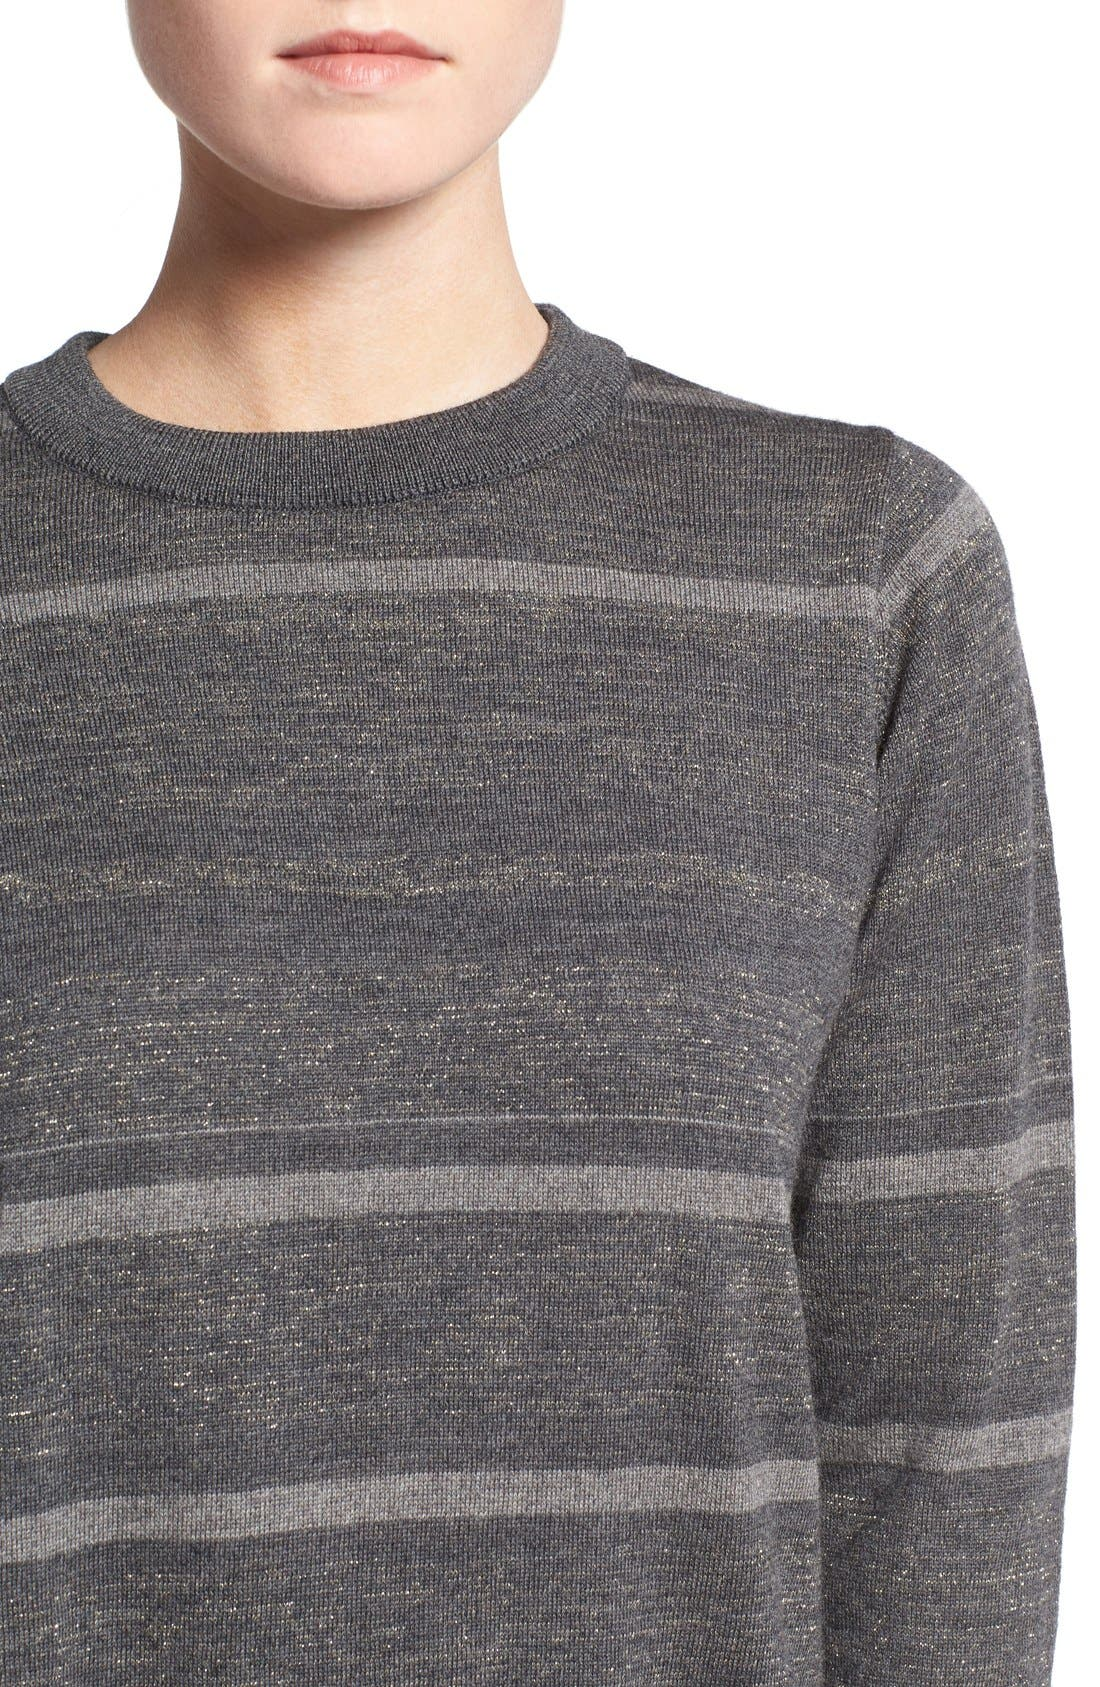 Alternate Image 4  - M.i.h. Jeans 'Falls' Metallic Stripe Merino Wool Sweater